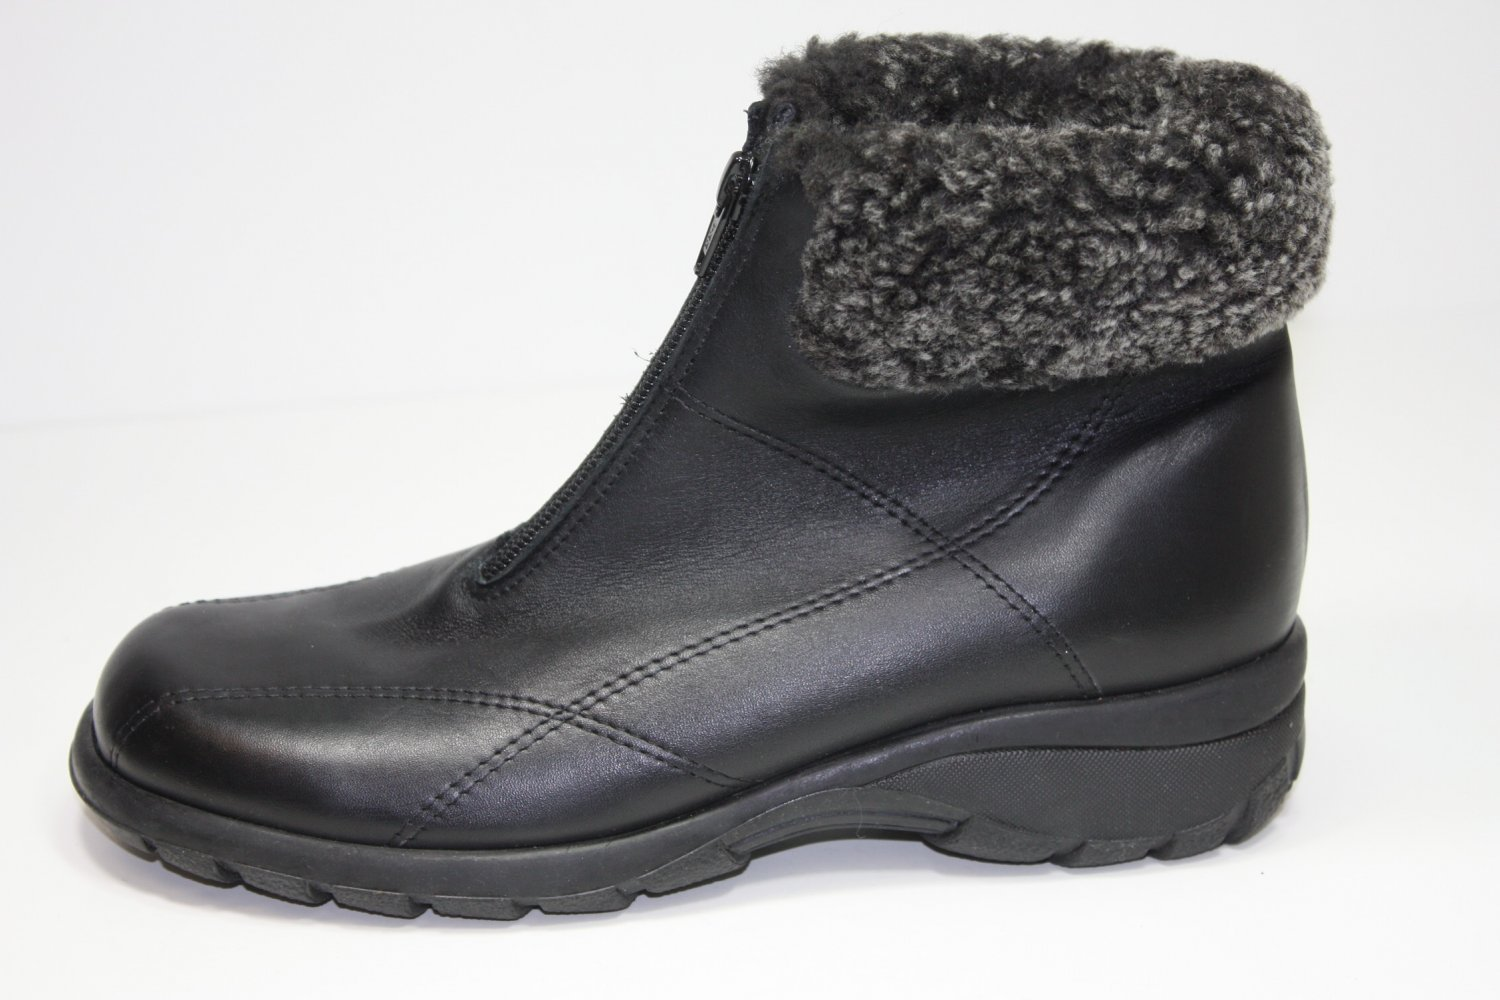 Martino Frosty Front Zip Ankle Boots Black Shoes US 8 $